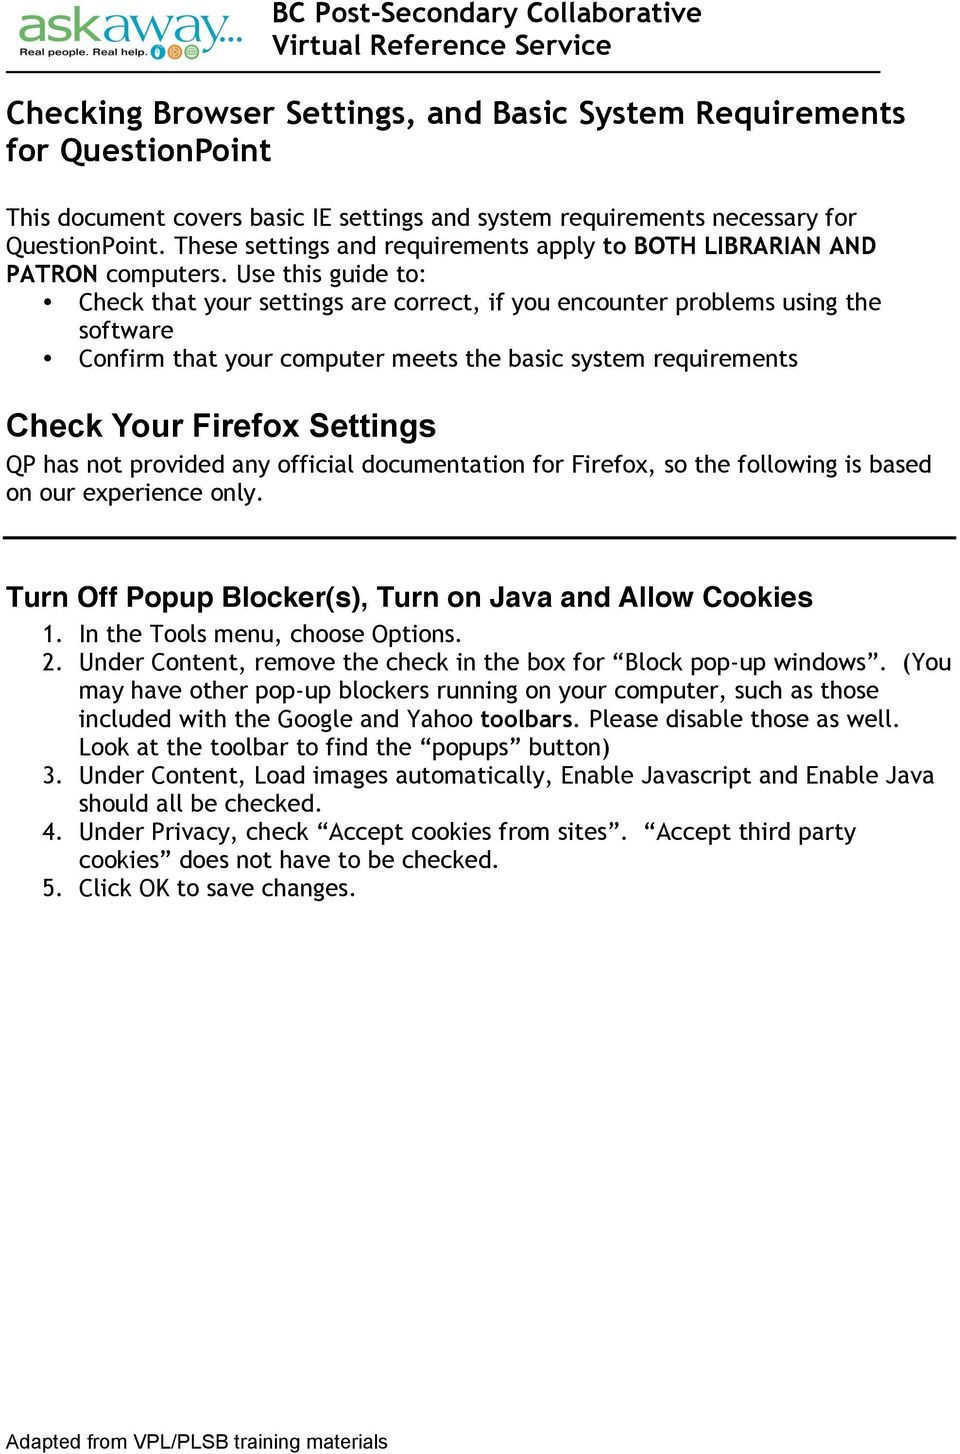 Use this guide to: Check that your settings are correct, if you encounter problems using the software Confirm that your computer meets the basic system requirements Check Your Firefox Settings QP has